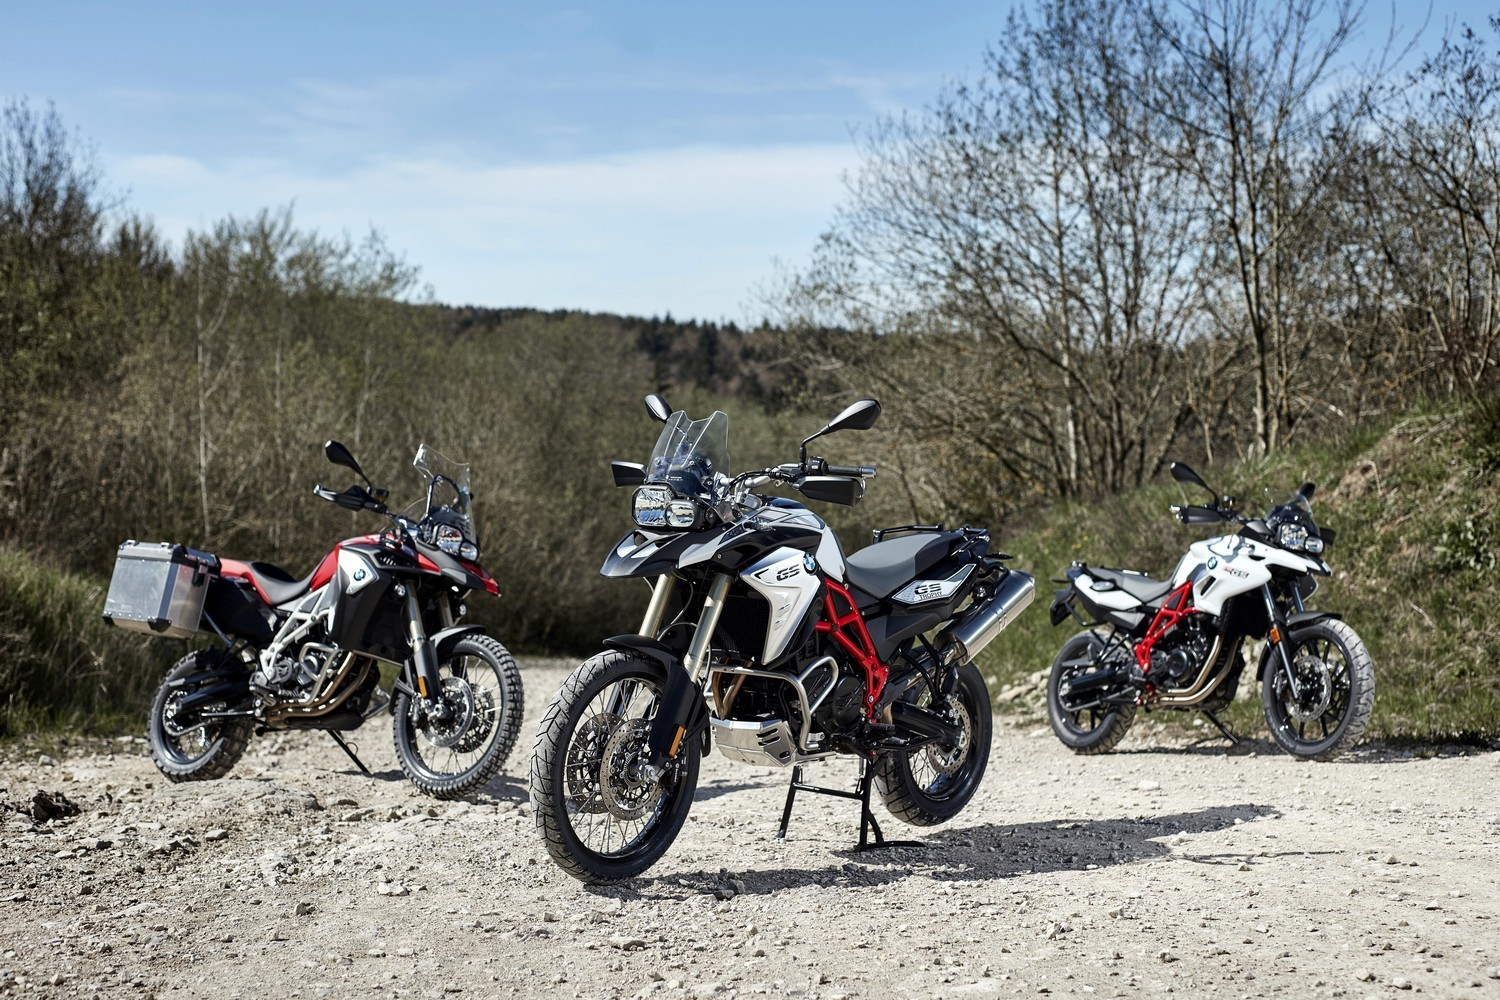 Обновленные BMW F 700 GS, F 800 GS and F 800 GS Adventure